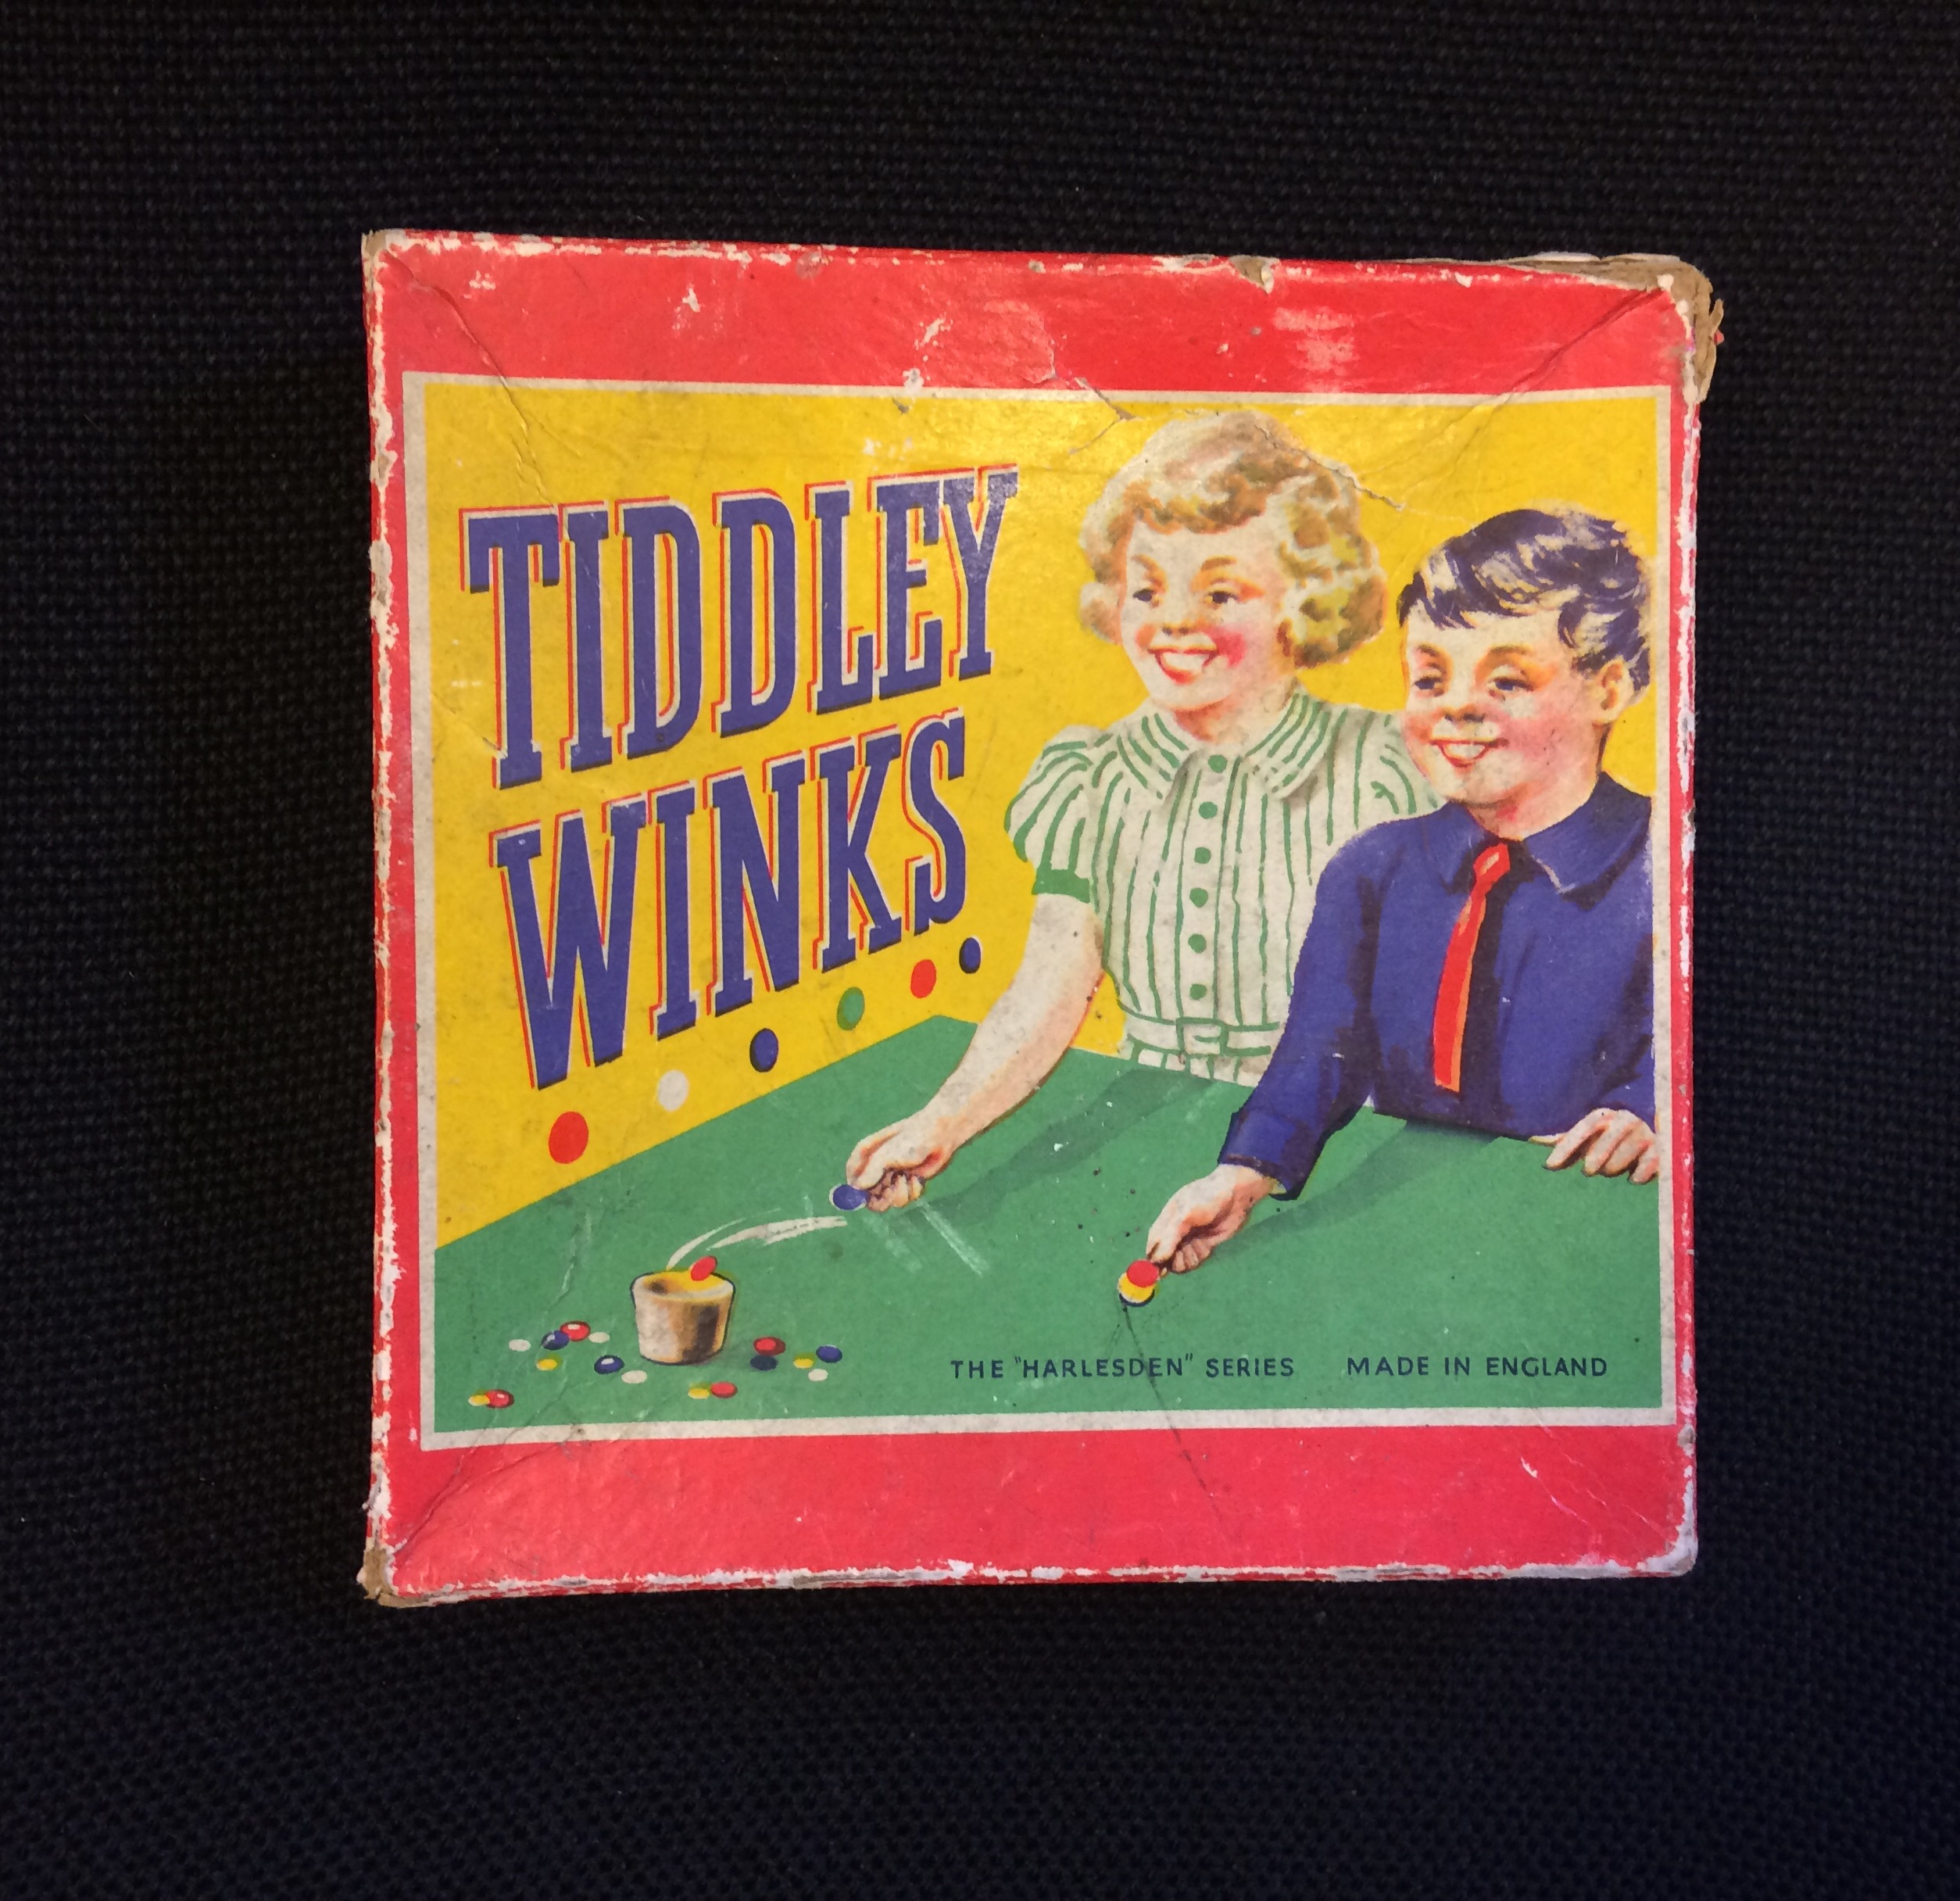 Photograph of a retro and colourful Tiddly Winks game box.